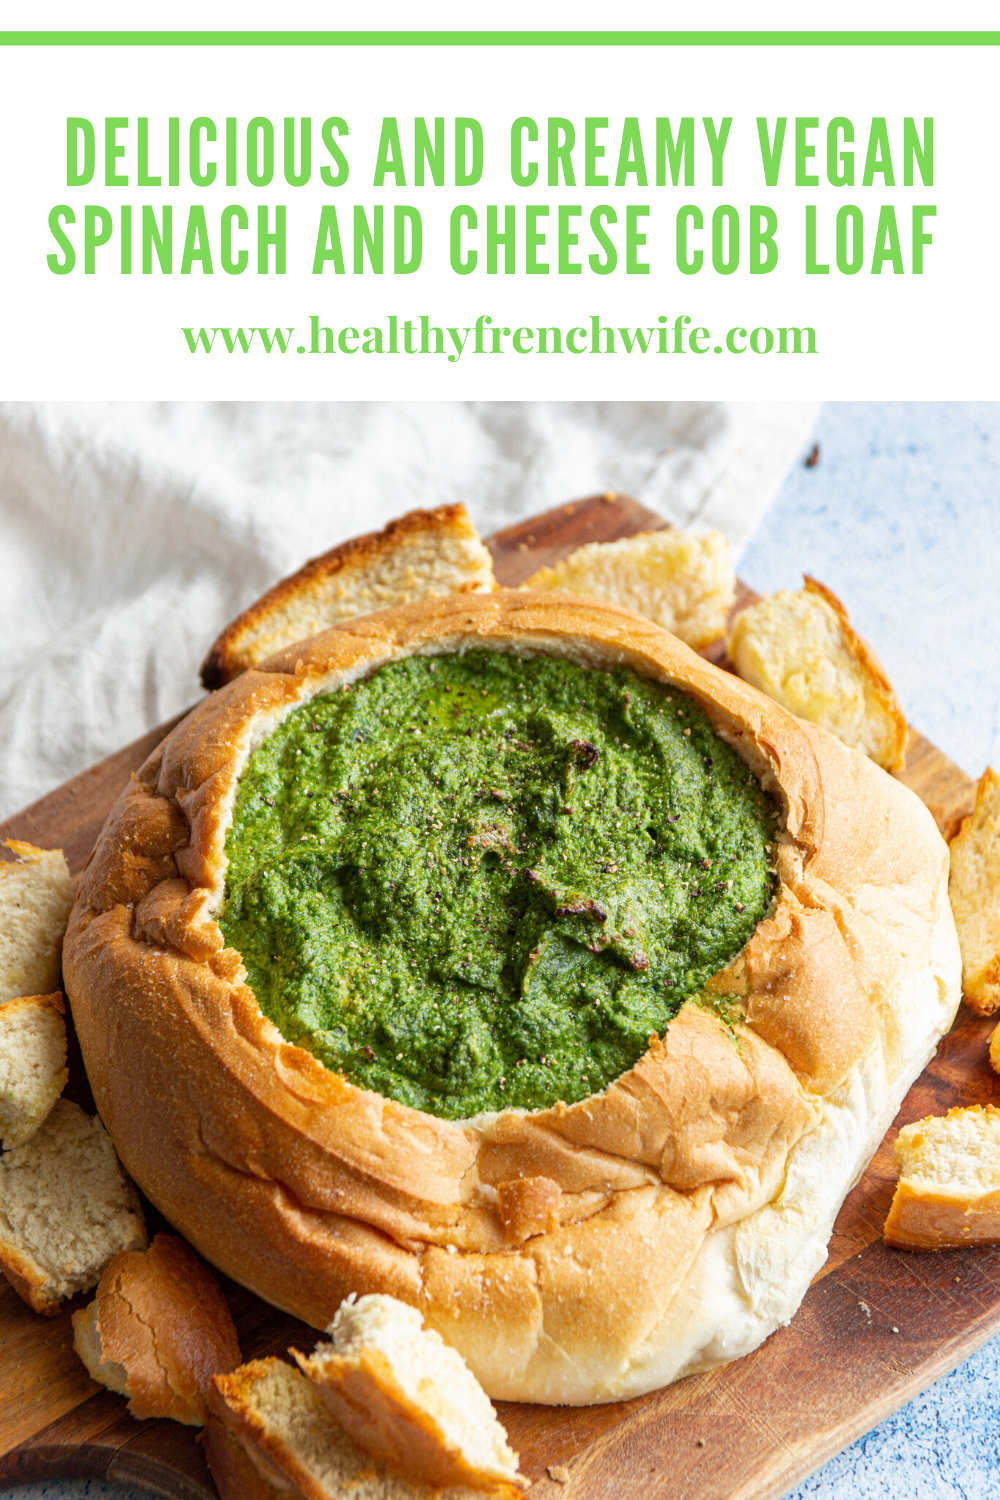 Delicious and Creamy Vegan Spinach and Cheese Cob Loaf